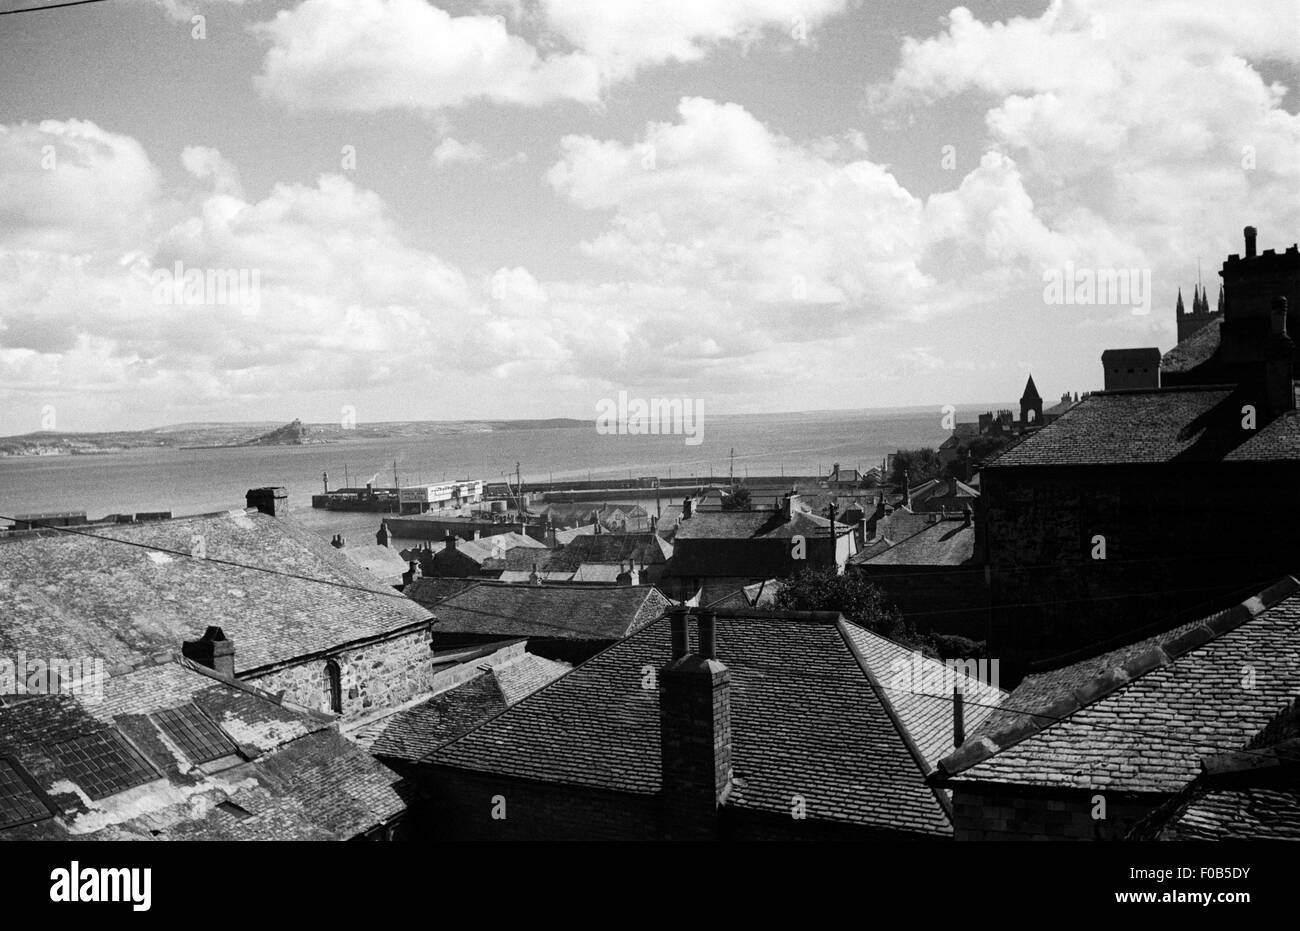 The roofs of a seaside town. - Stock Image